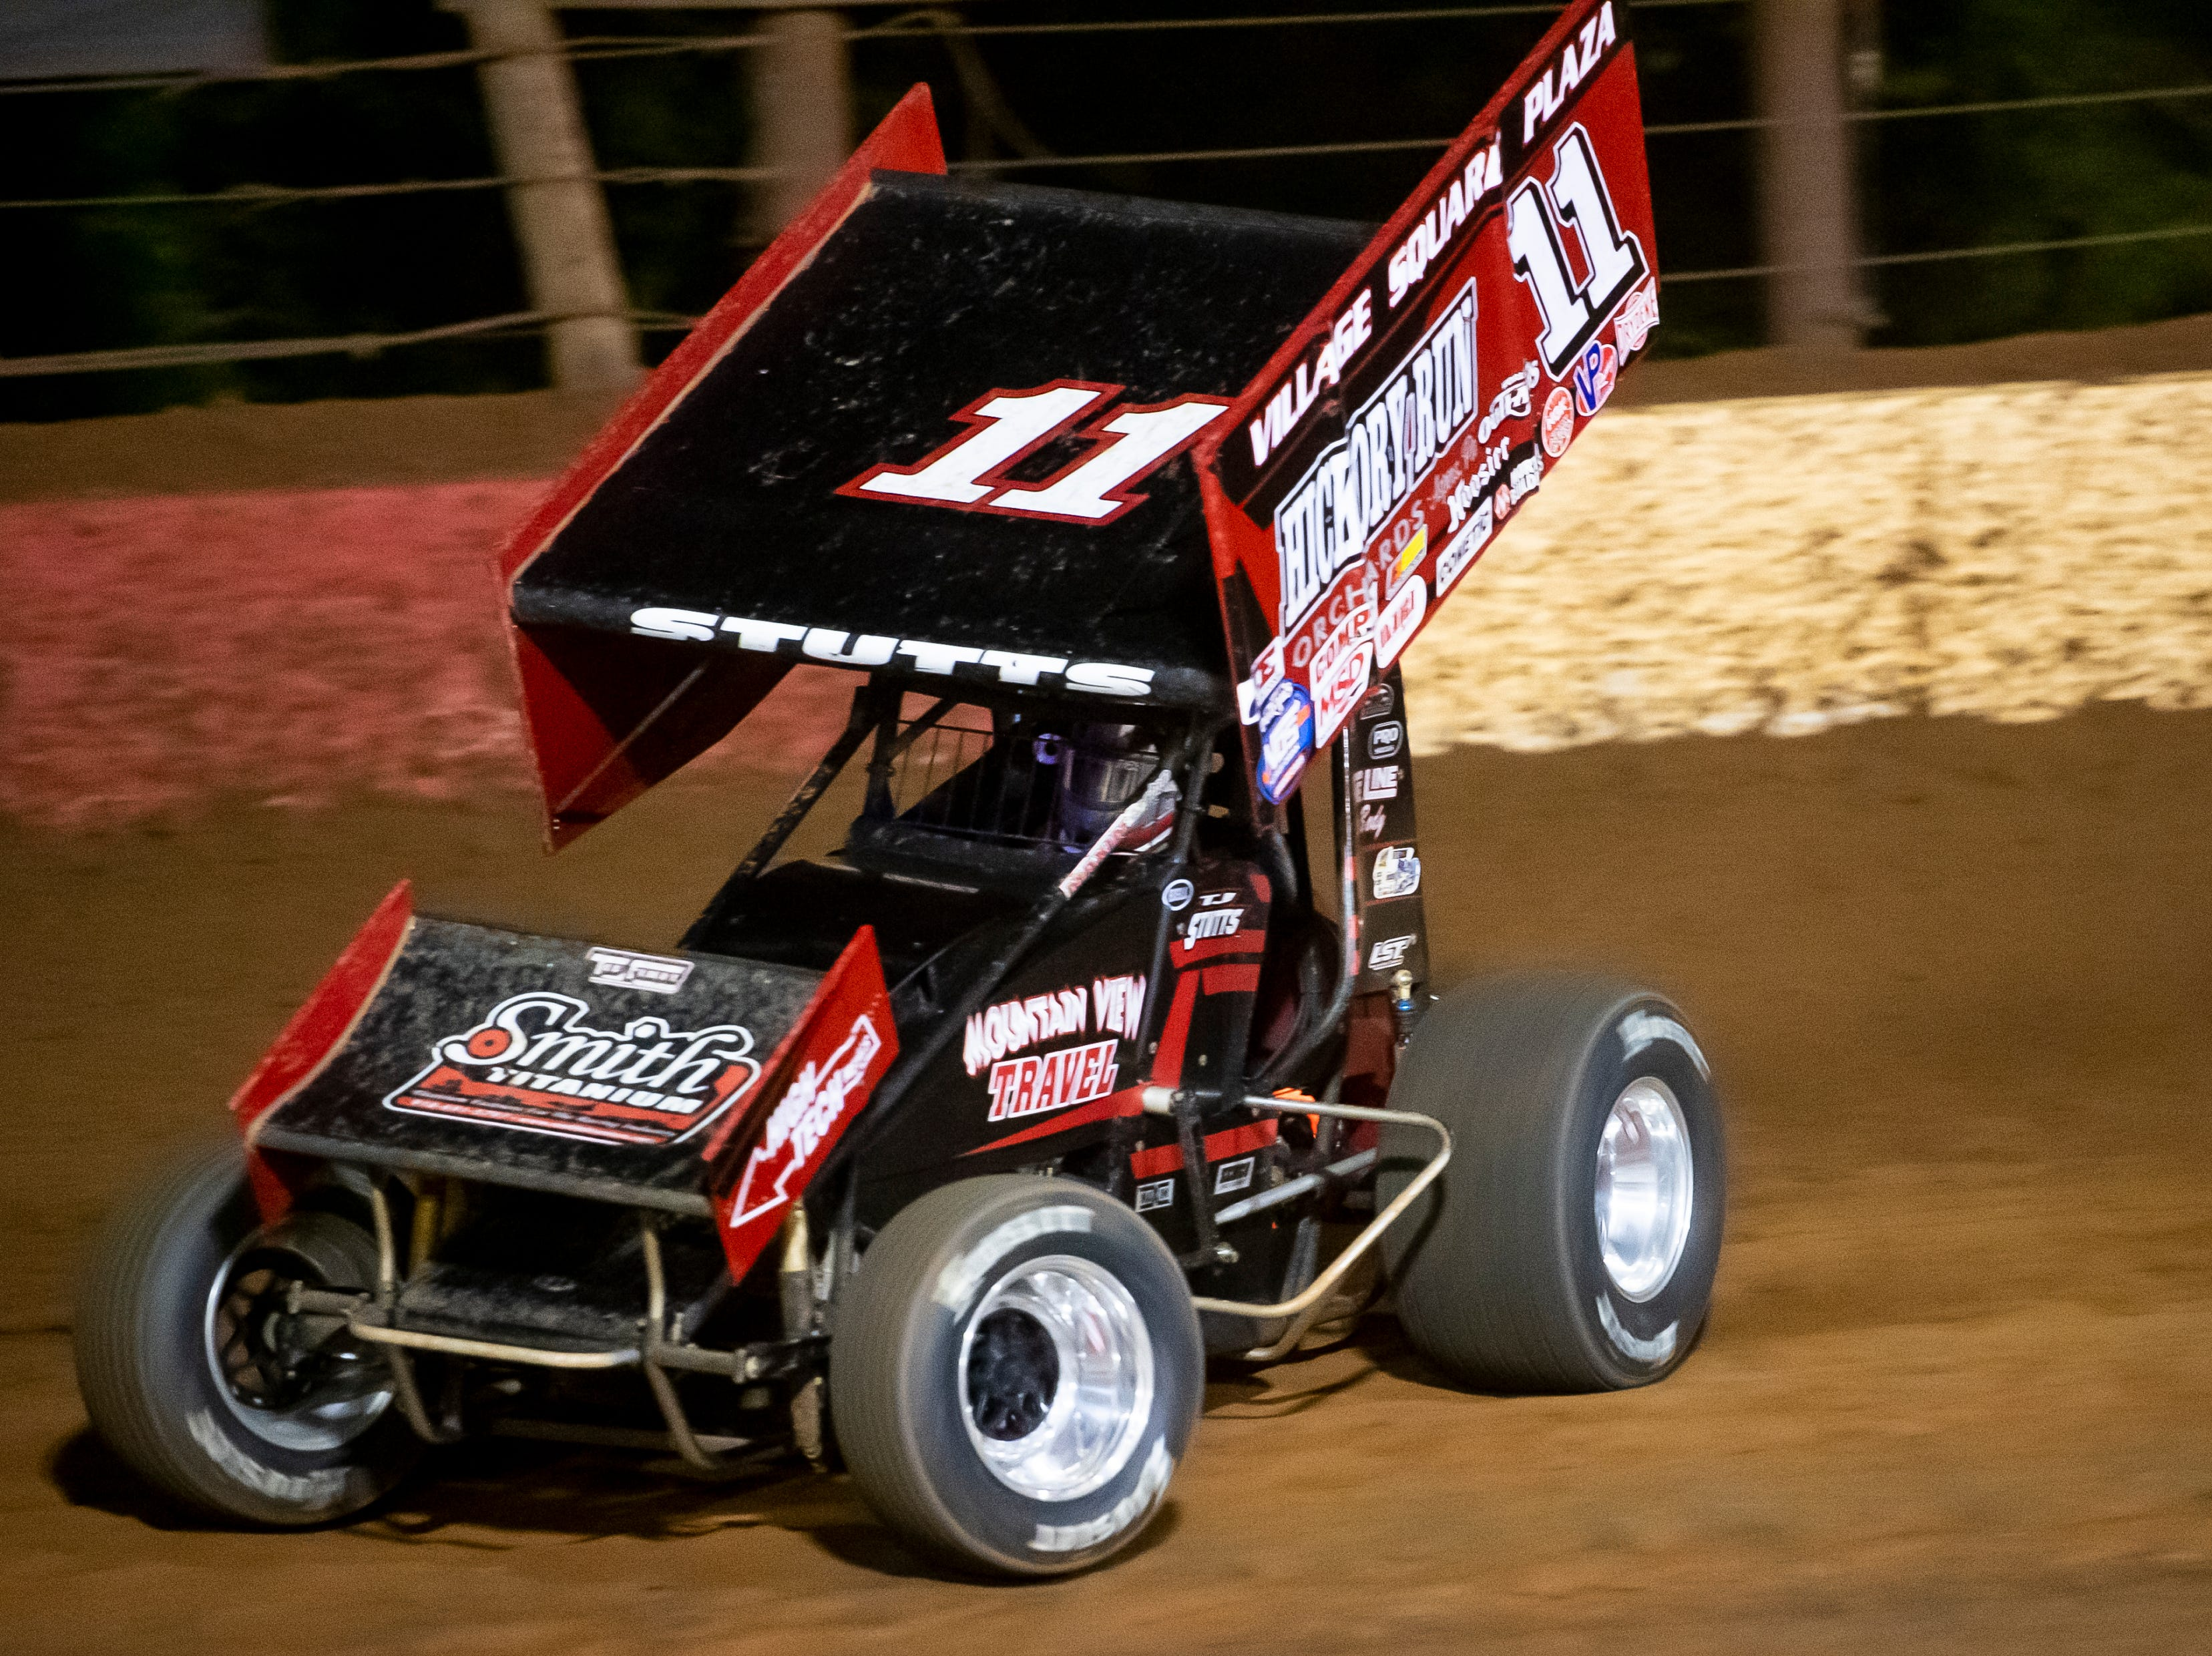 T.J. Stutts races the number 11 car in the Last Chance Showdown during the World of Outlaws Gettysburg Clash at Lincoln Speedway in Abbottstown on Wednesday, May 15, 2019.